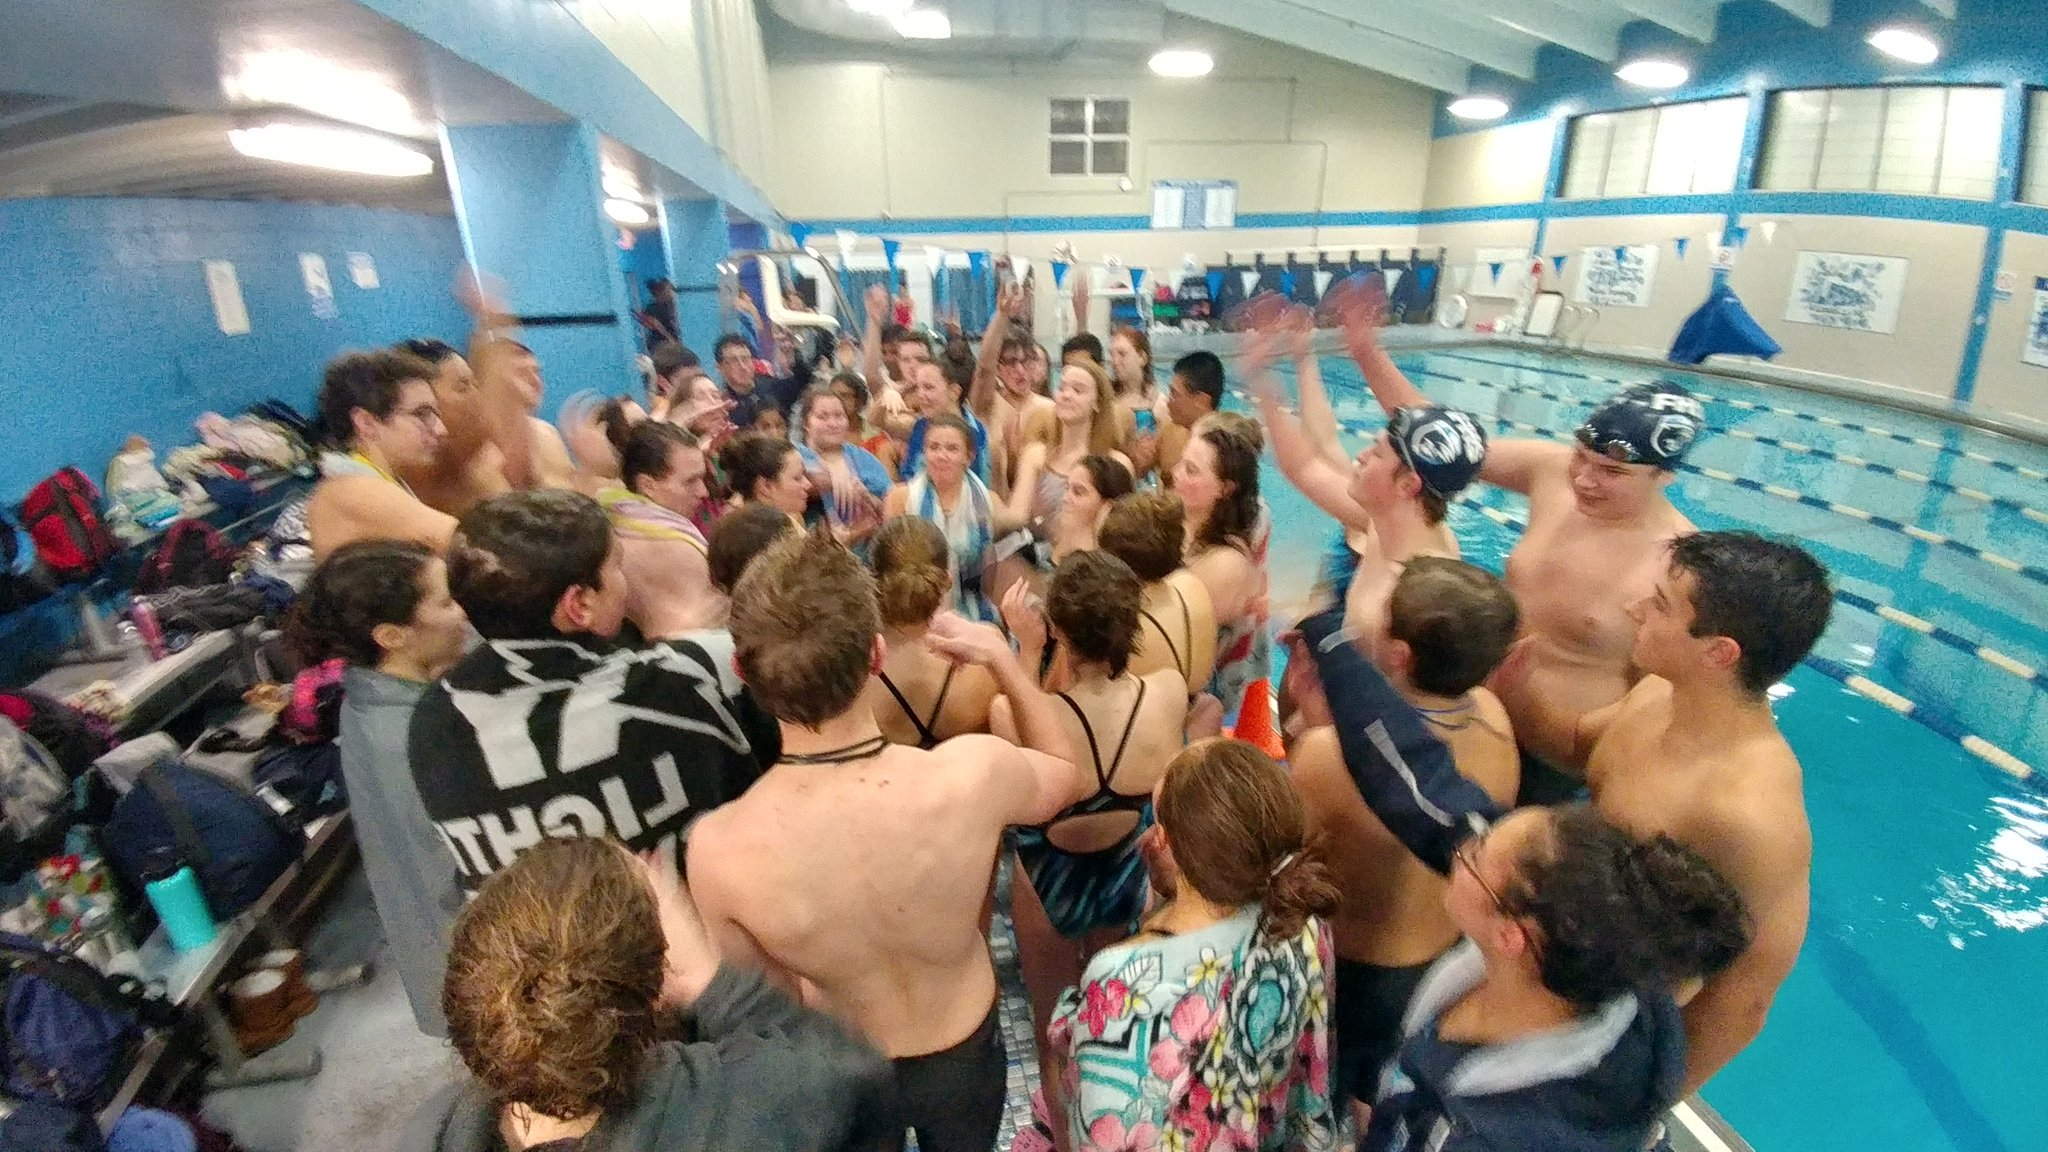 FHS swim team celebrates (via @coachB_fhs)